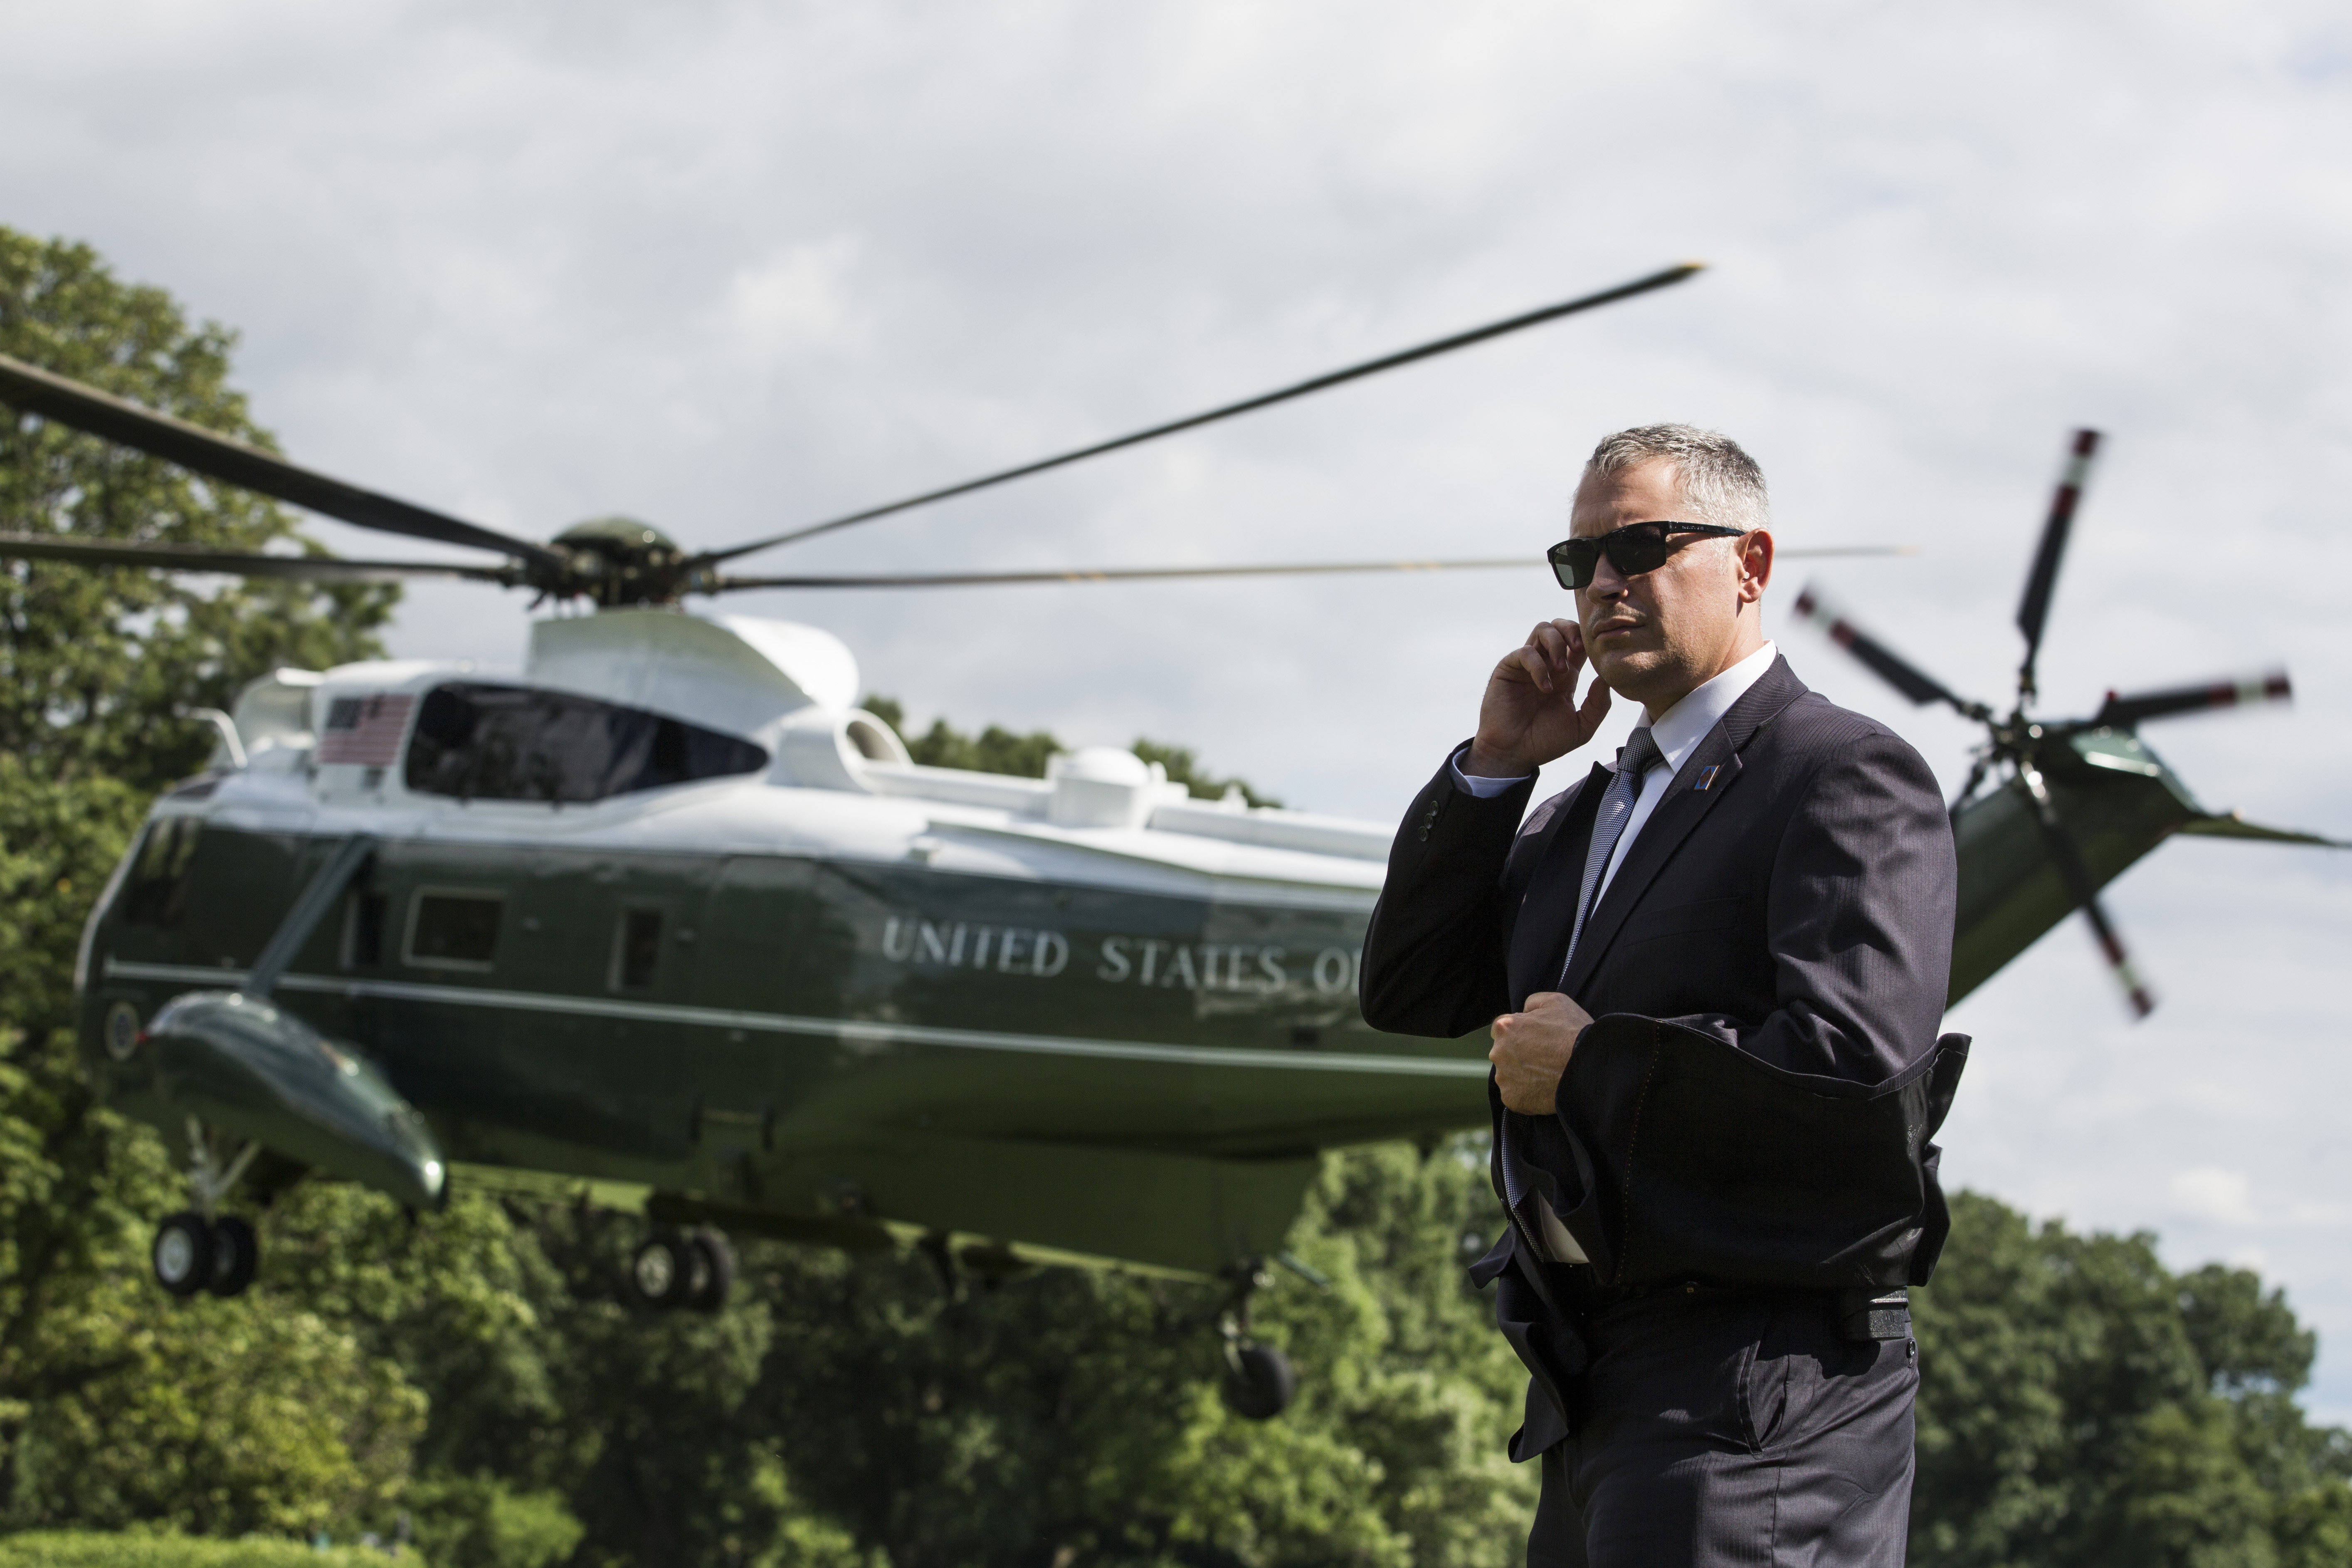 A U.S. Secret Service Agent stands as Marine One departs the White House.